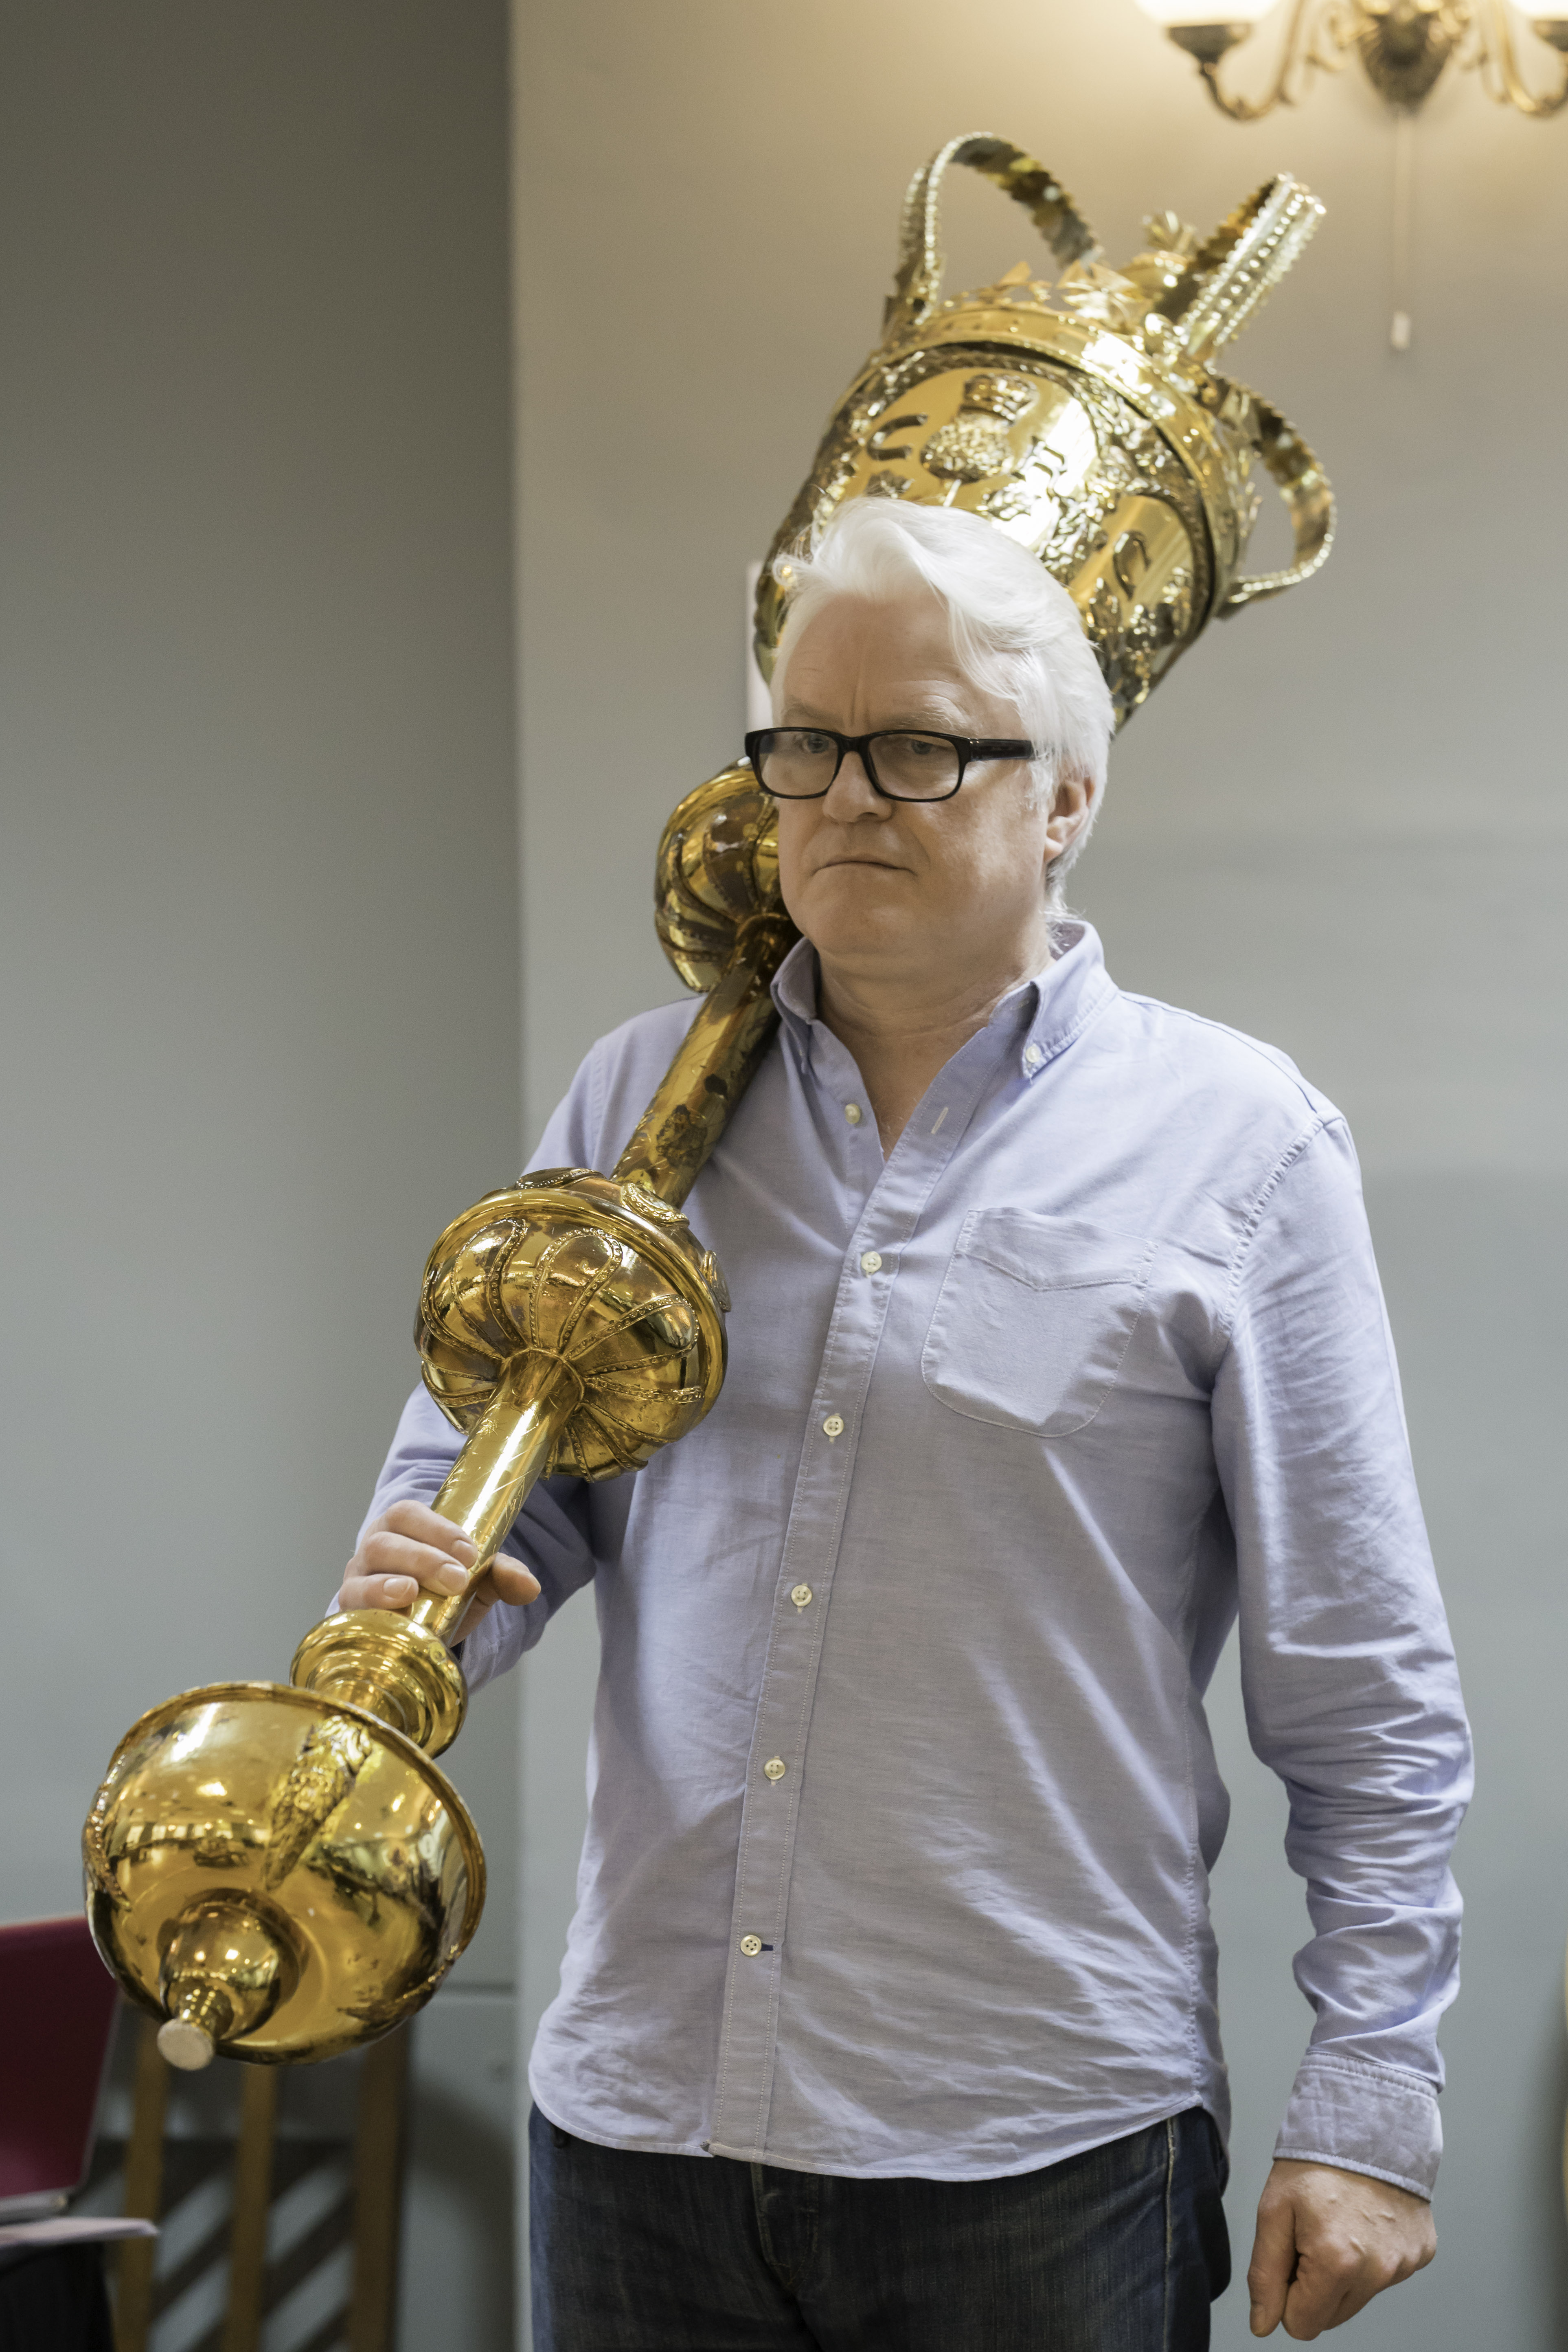 Man holds a gold mace